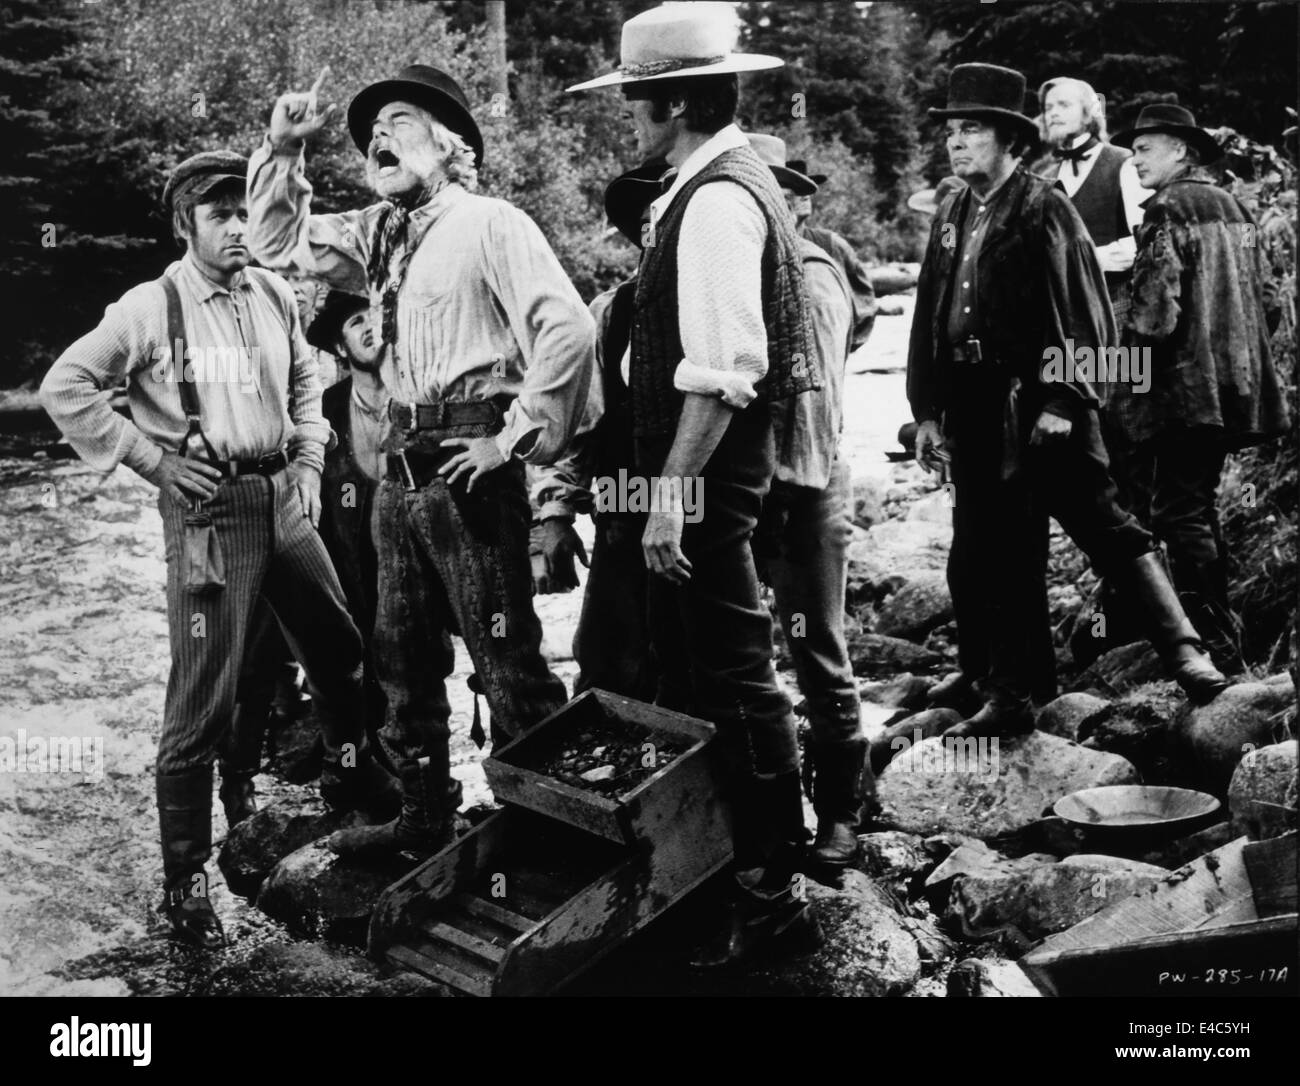 Lee Marvin (2nd Left), Clint Eastwood (3rd left), on-set of the Film, 'Paint Your Wagon', 1969 - Stock Image